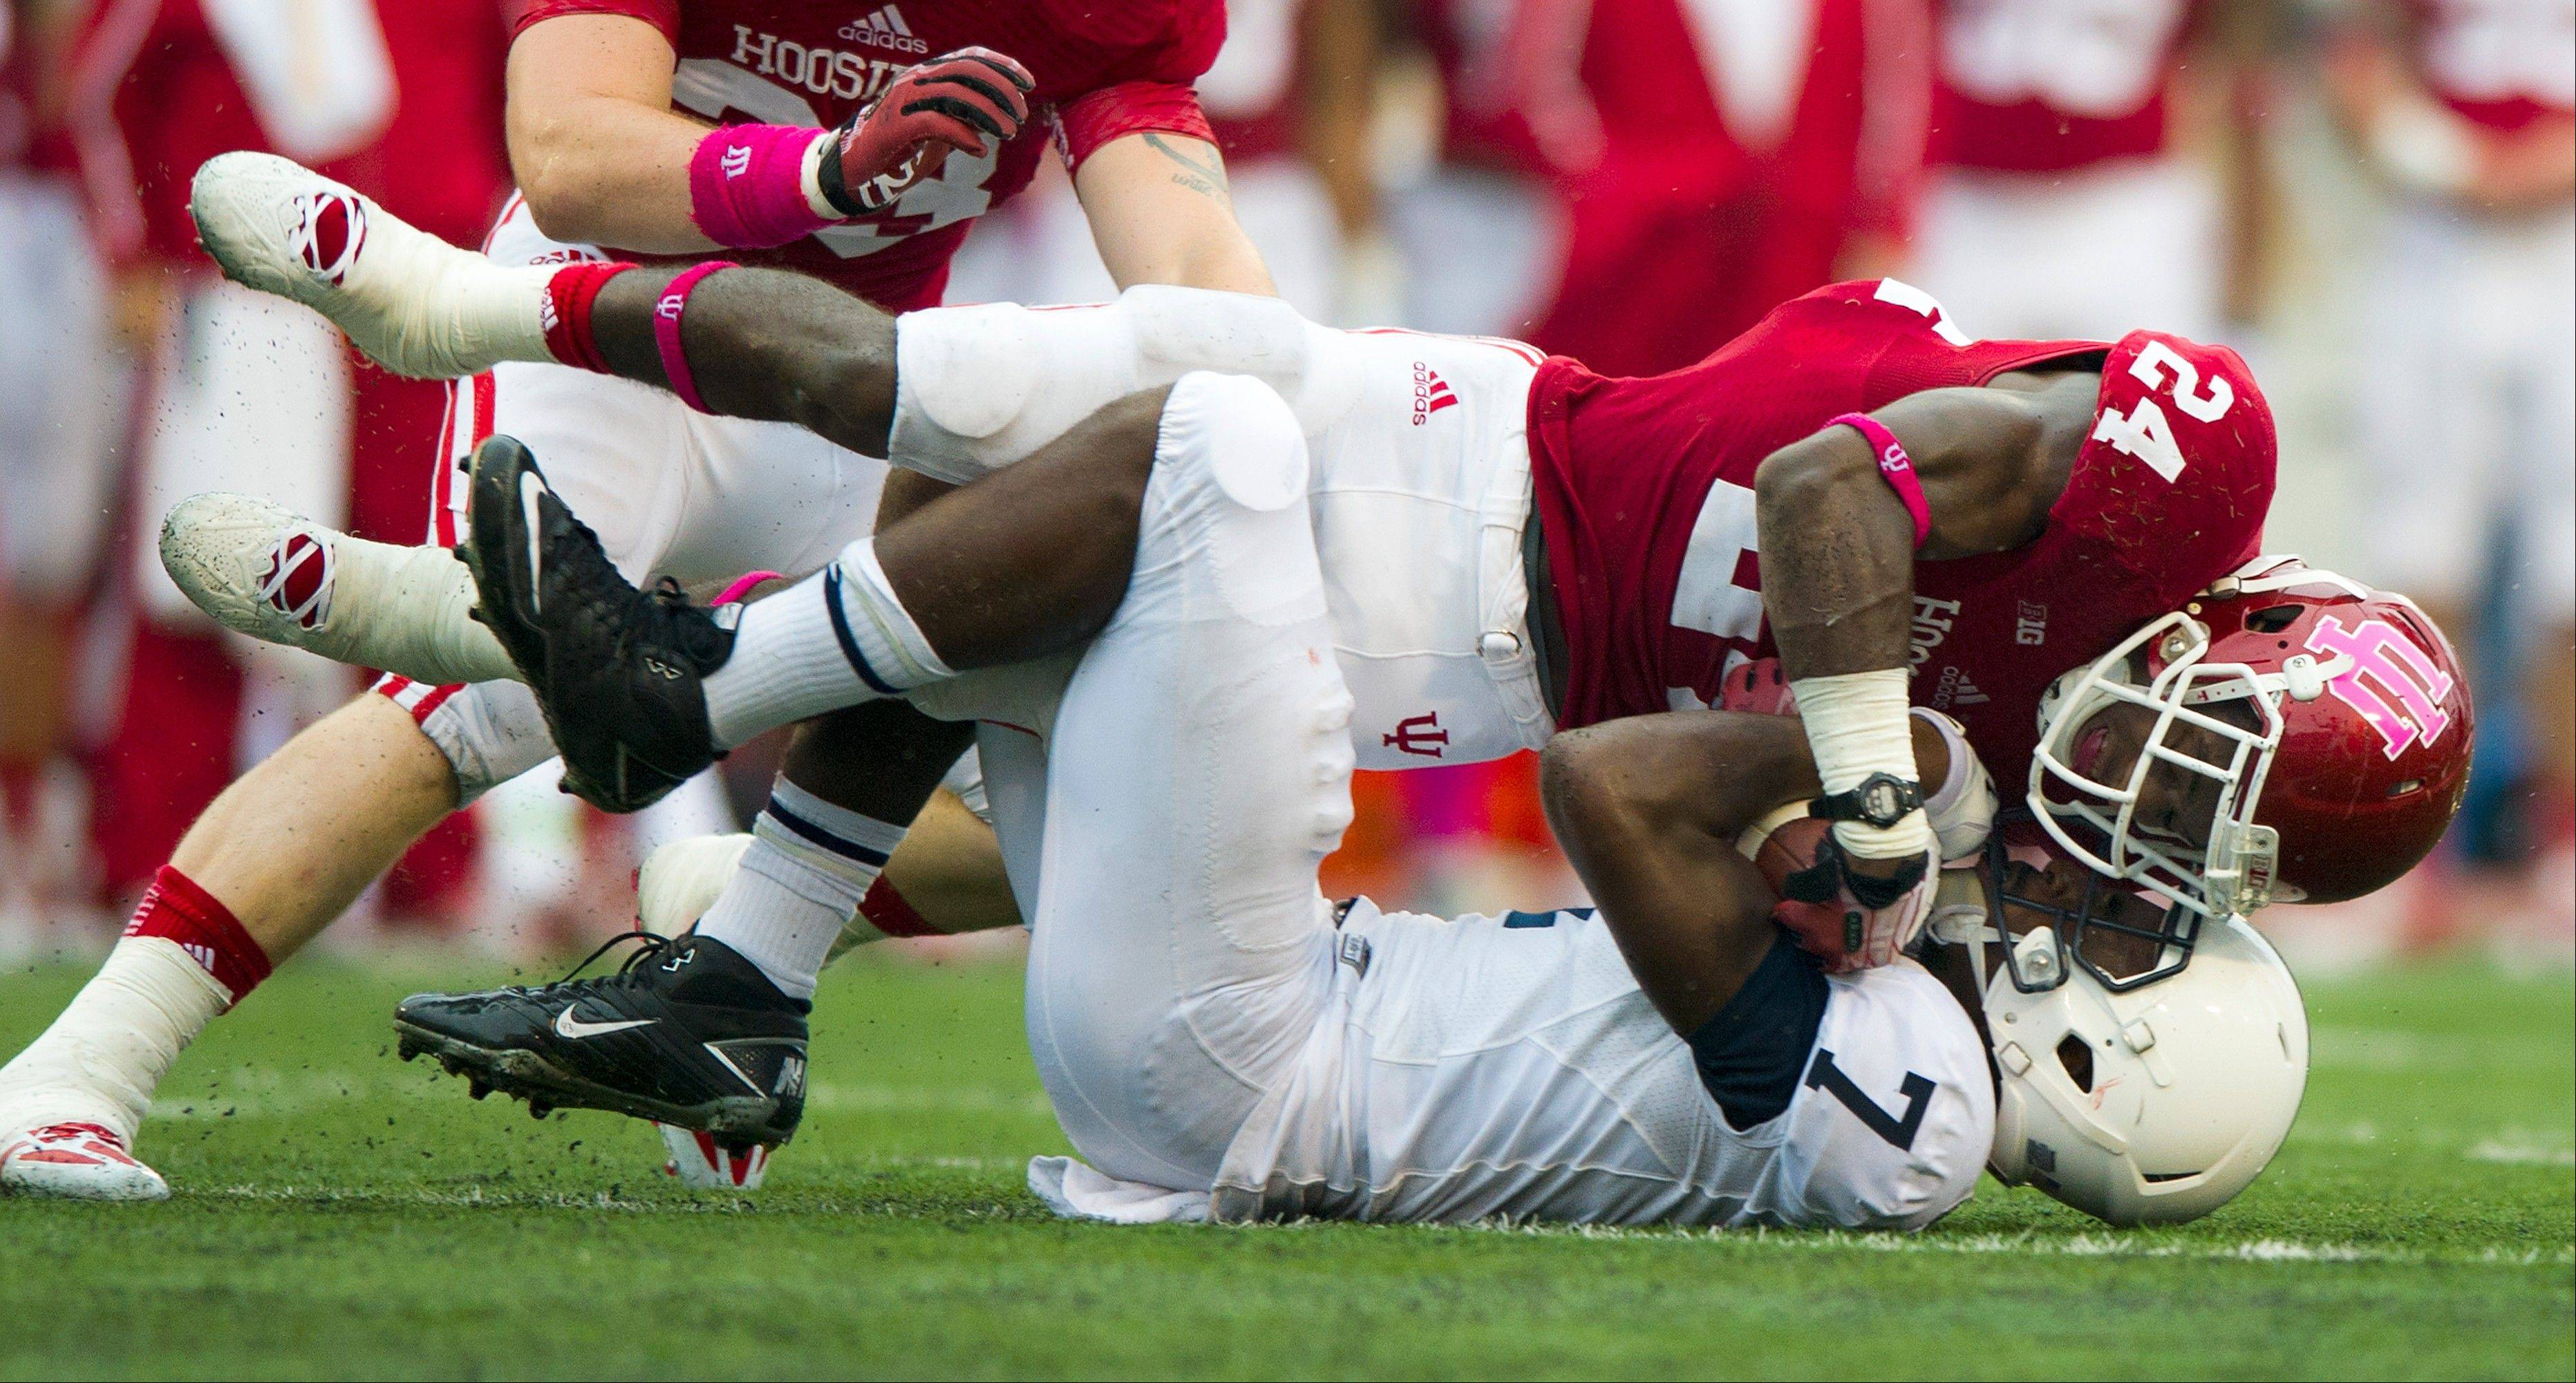 Nittany Lions keep a sense of calm amid struggles